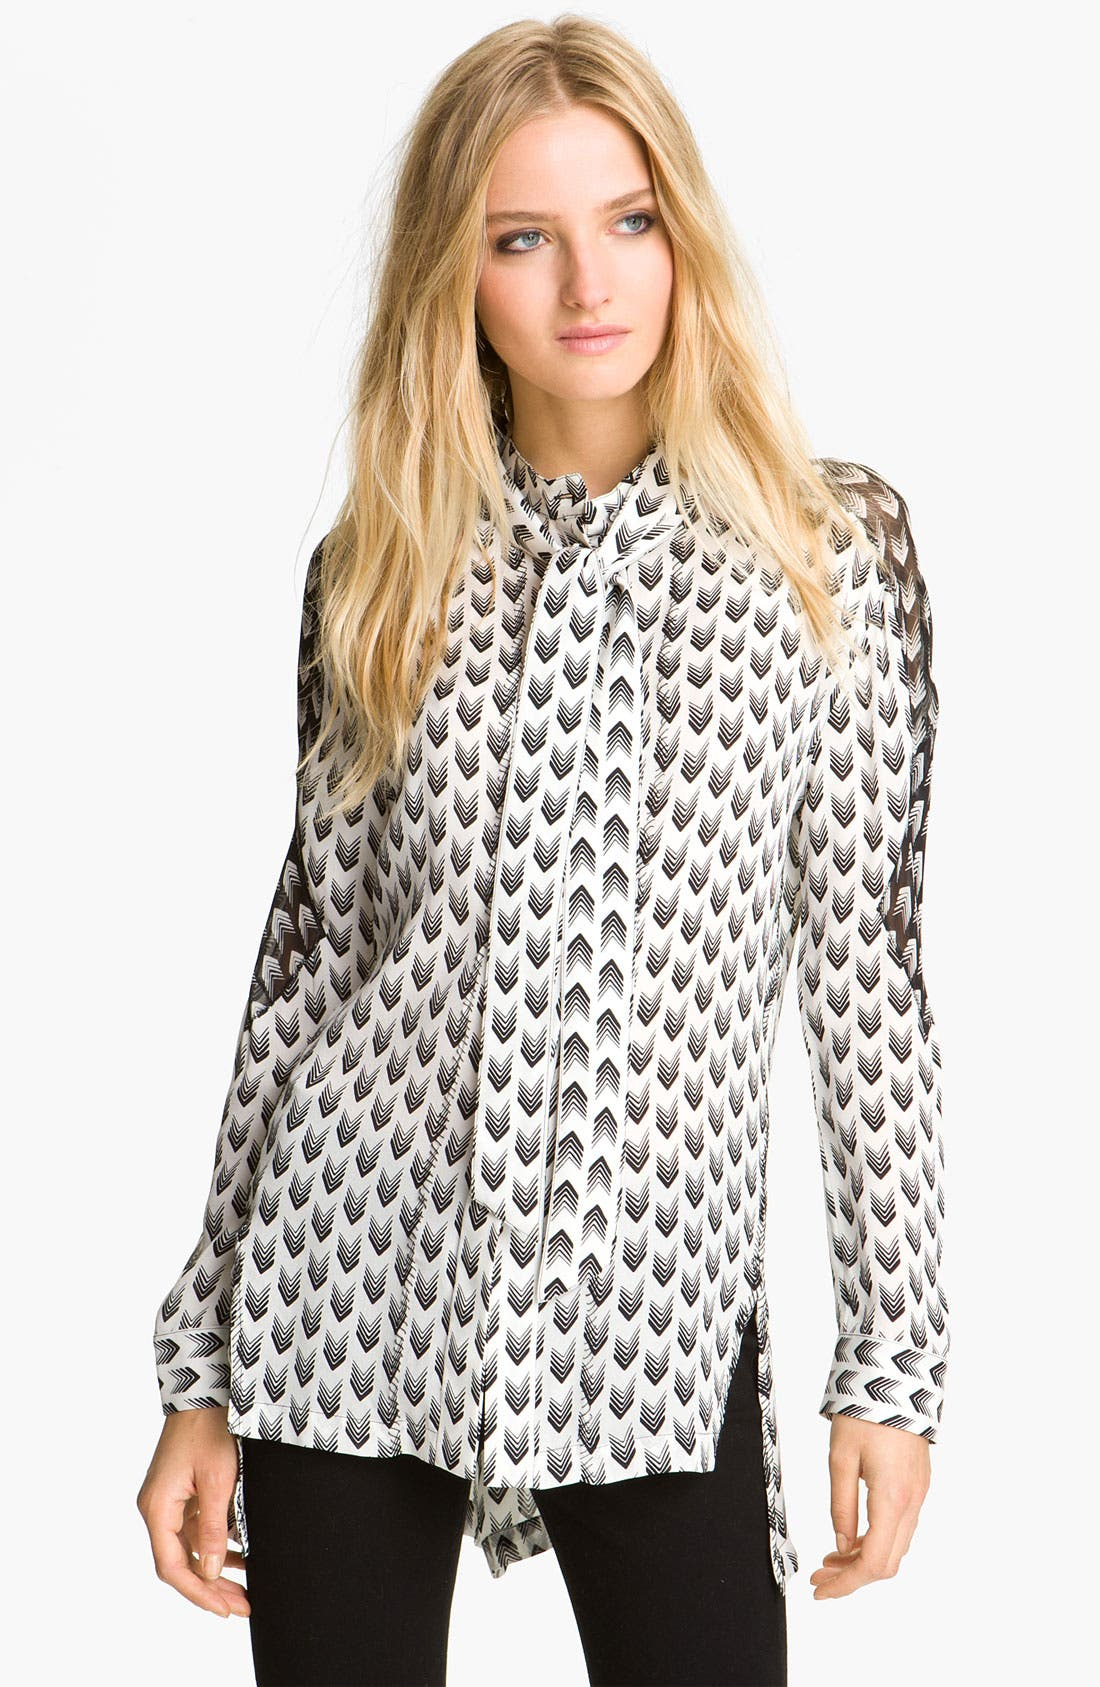 Main Image - rag & bone 'Gayatri Arrow' Print Shirt